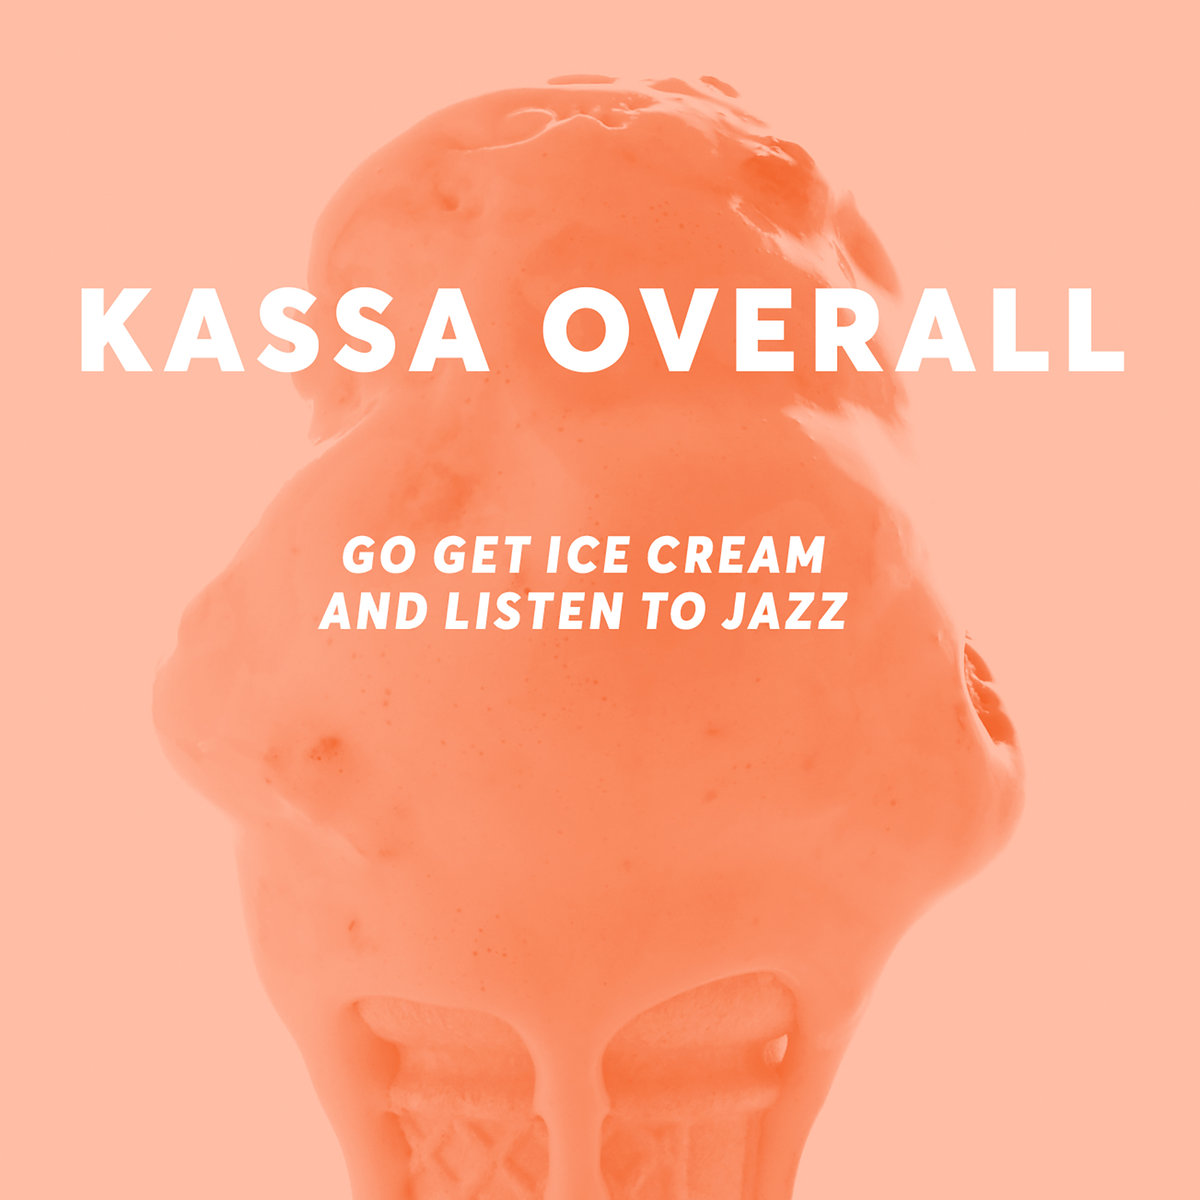 Kassa Overall – Go Get Ice Cream And Listen to Jazz